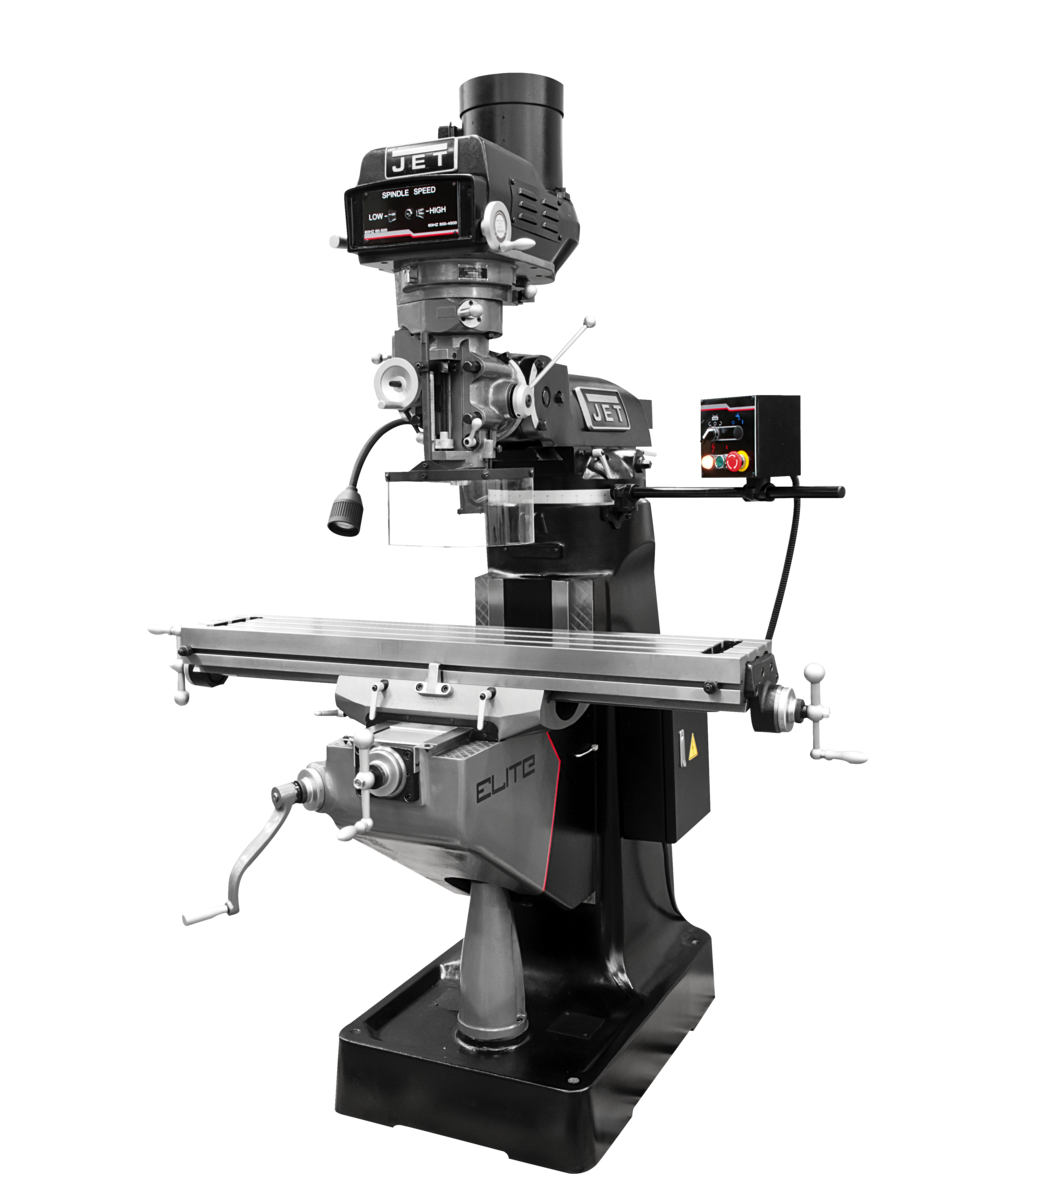 ETM-949 Mill with 2-Axis ACU-RITE 203 DRO and X, Y, Z-Axis JET Powerfeeds and USA Made Air Draw Bar